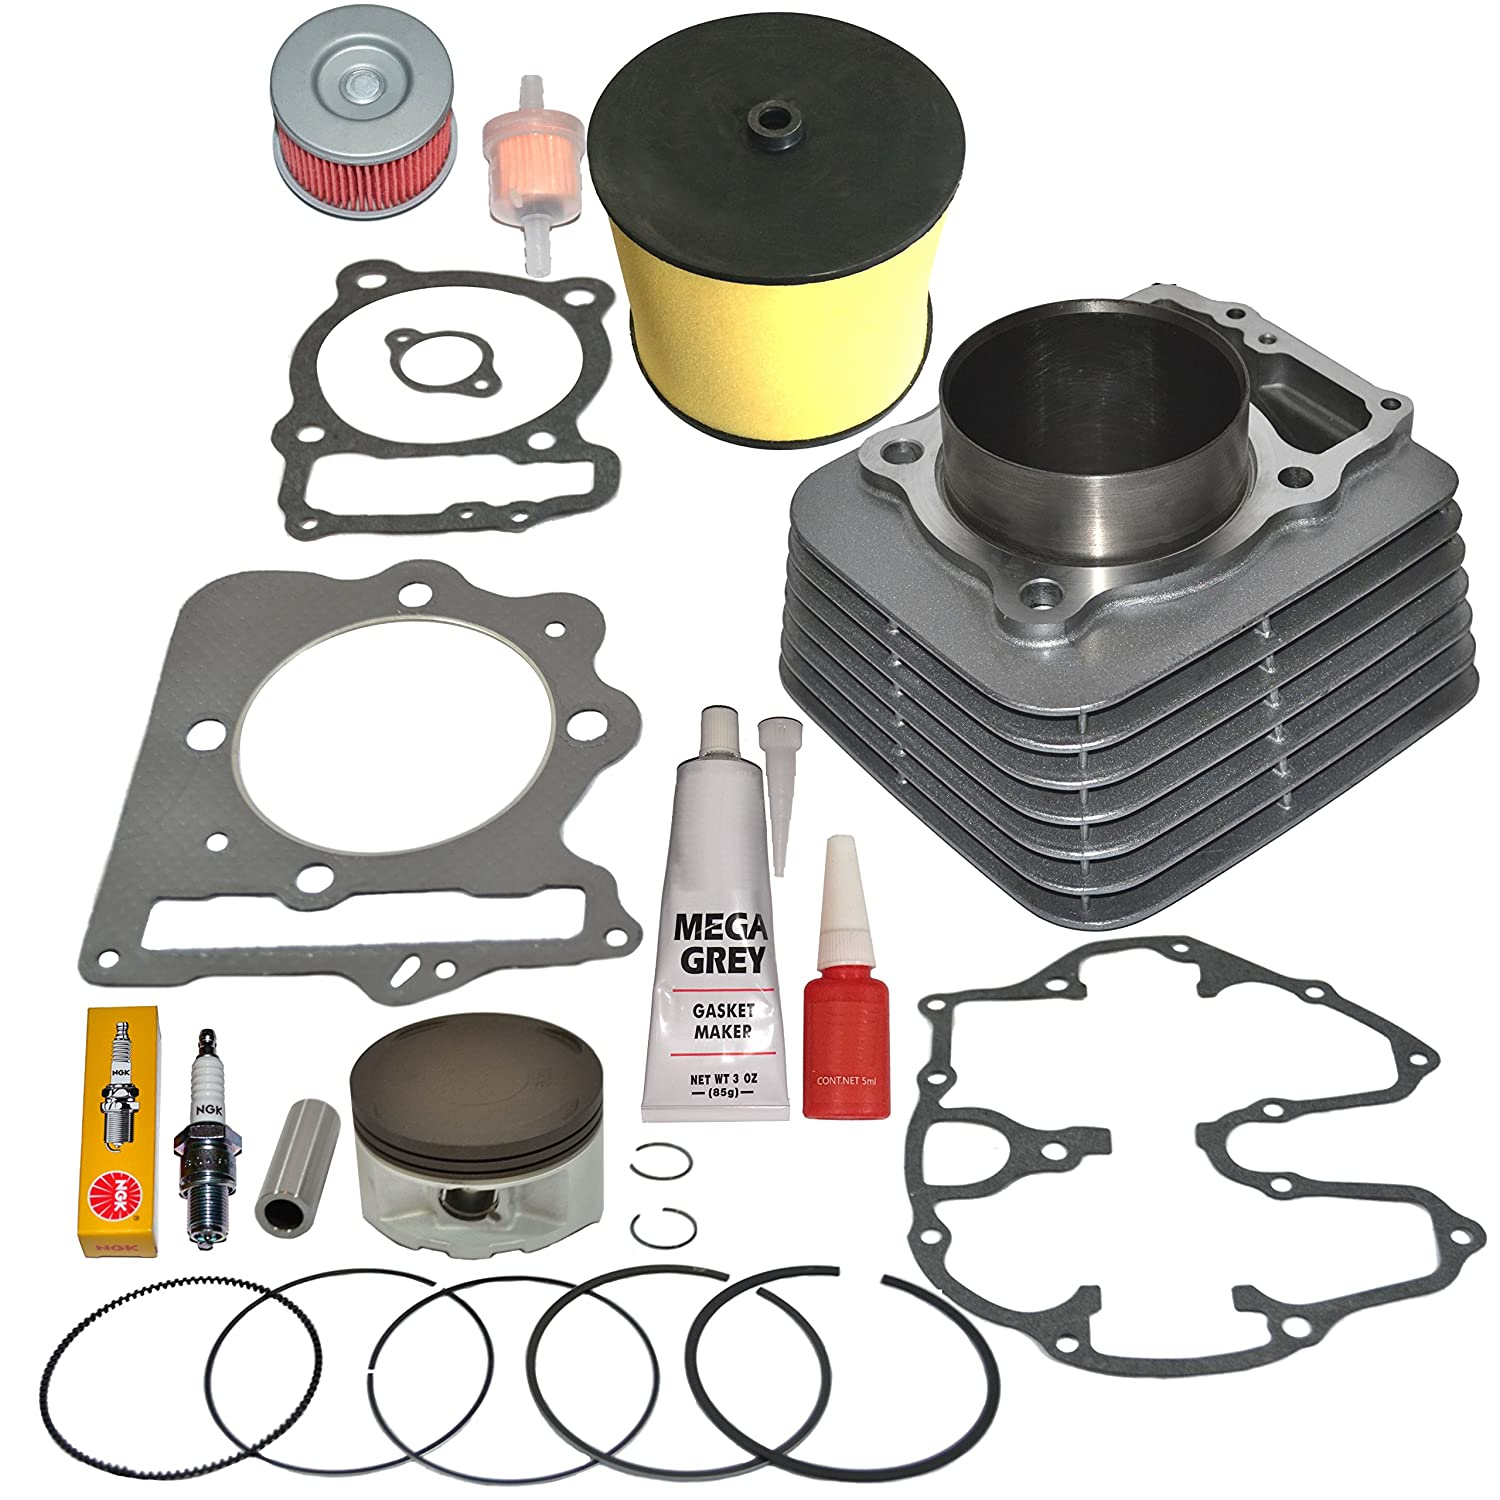 amazon com: piston cylinder gasket rings air filter top end kit set fits honda  trx400ex trx 400ex 1999-2008: automotive